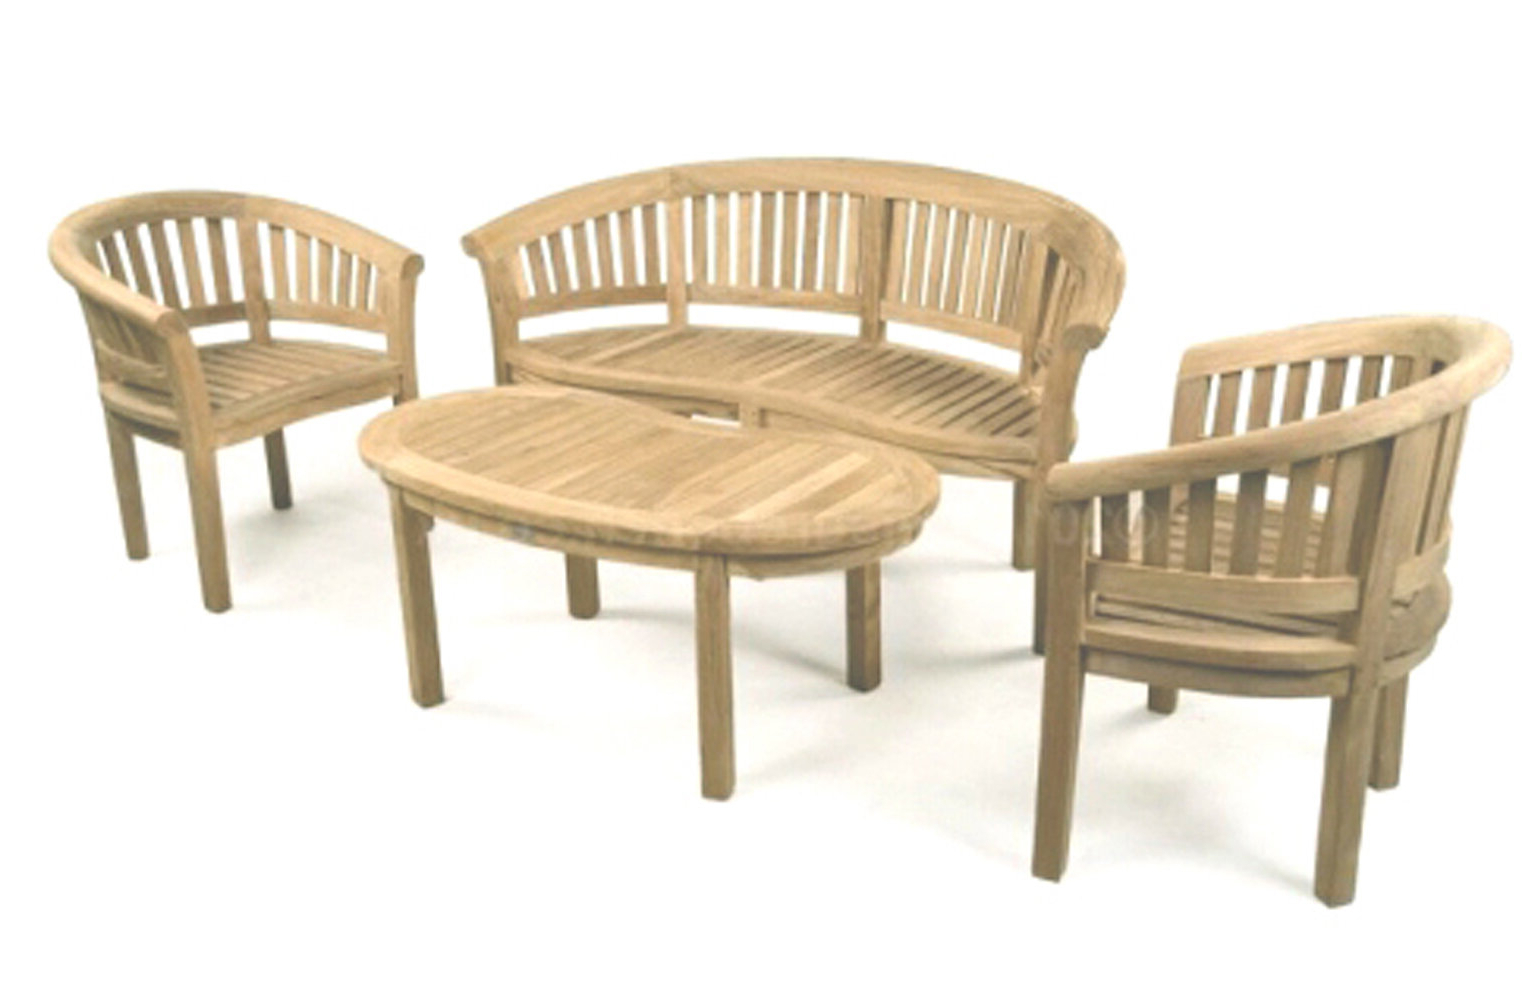 Teak Glider Benches Intended For 2020 California Teak Glider Bench (View 17 of 30)